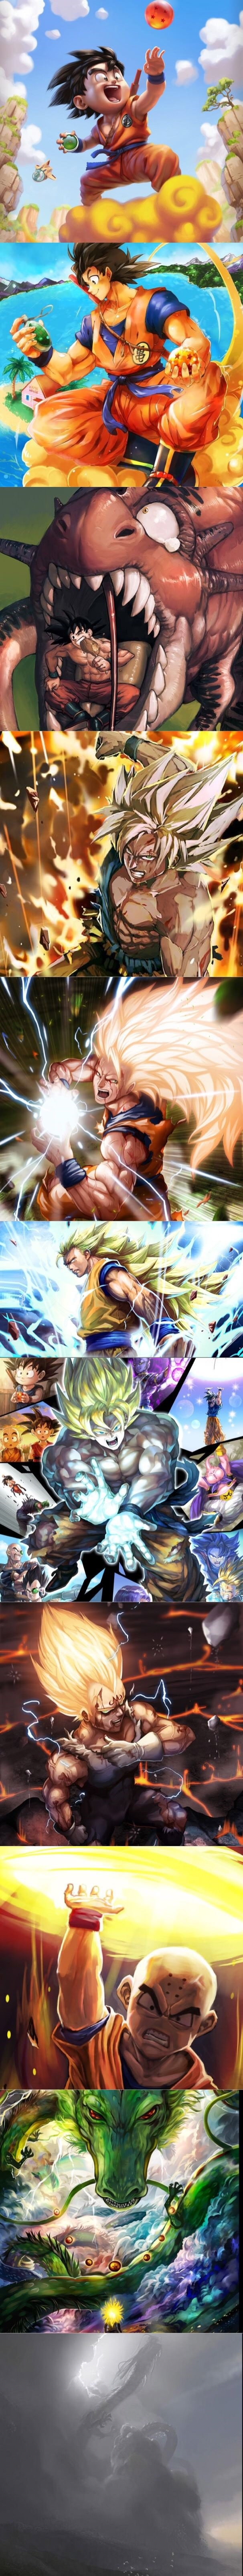 Beautiful DBZ artwork